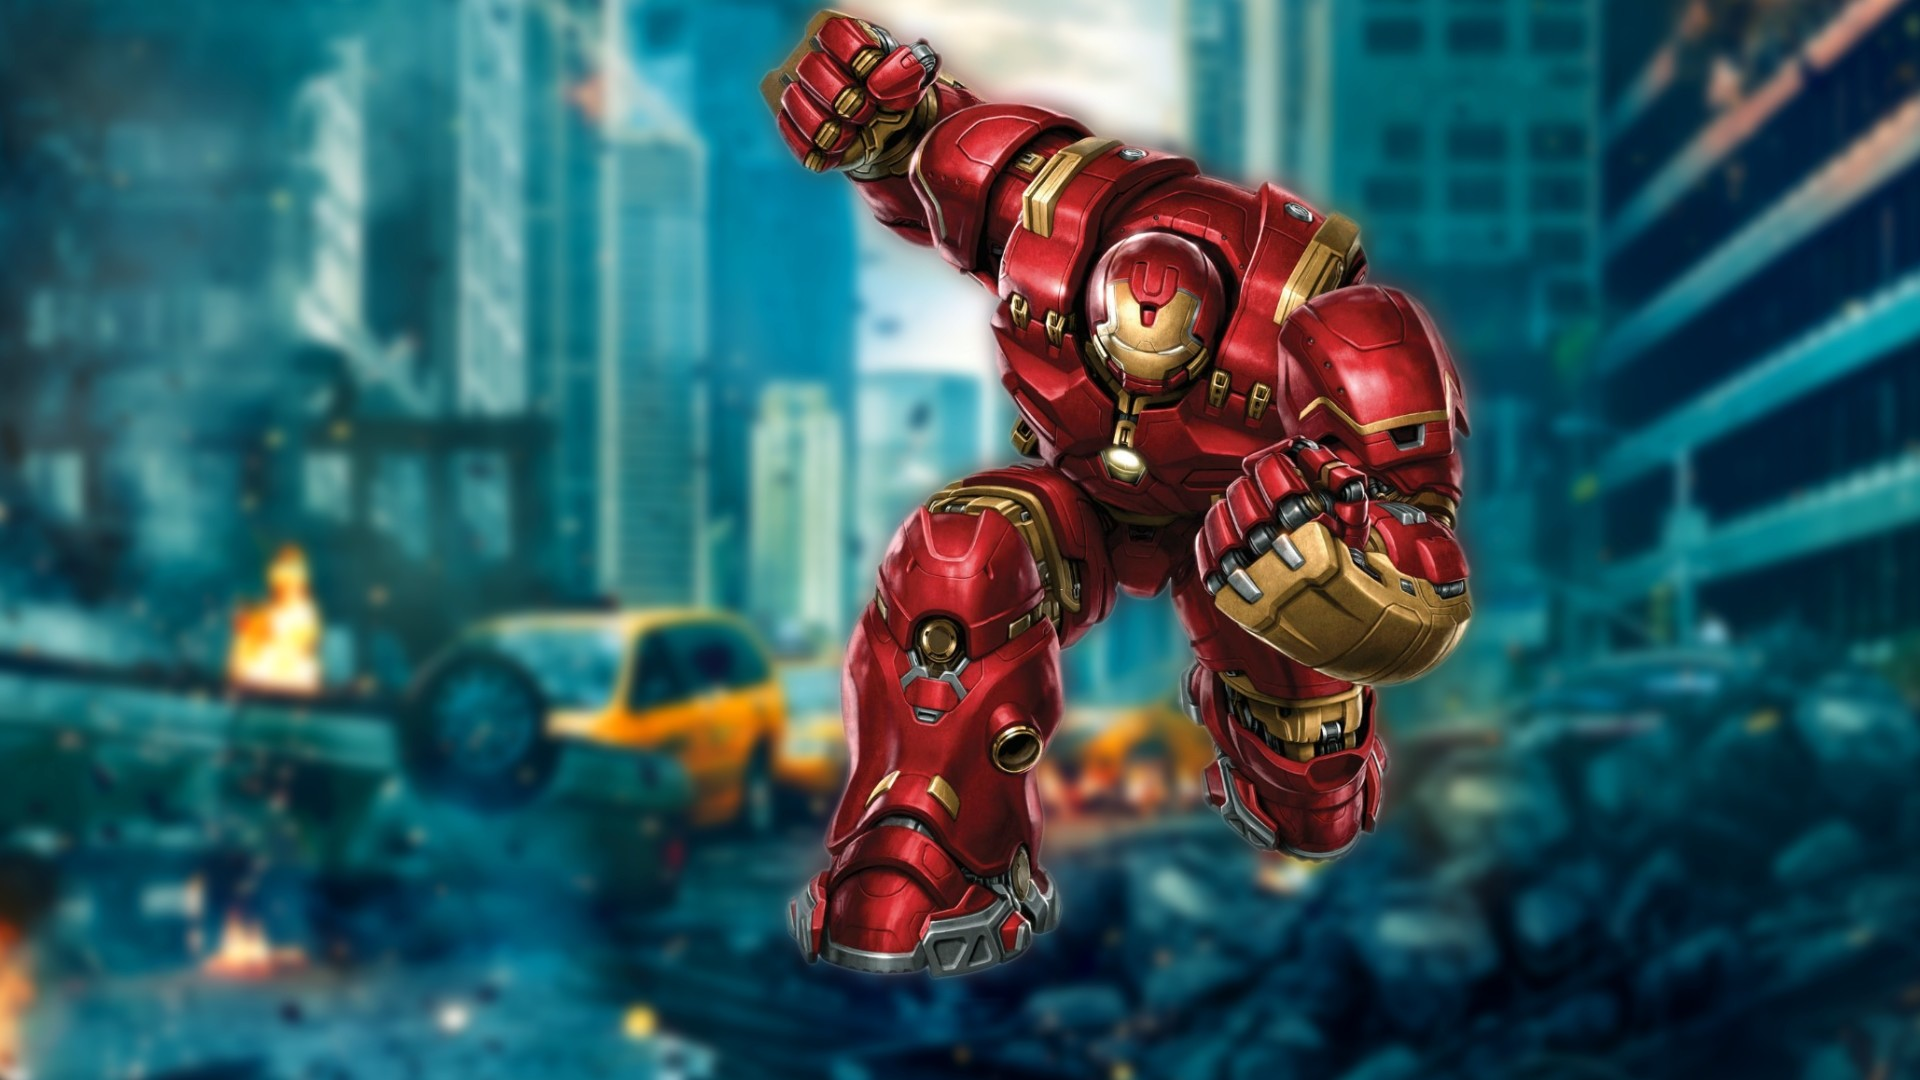 1920x1080 ... hulkbuster by watchall on deviantart ...